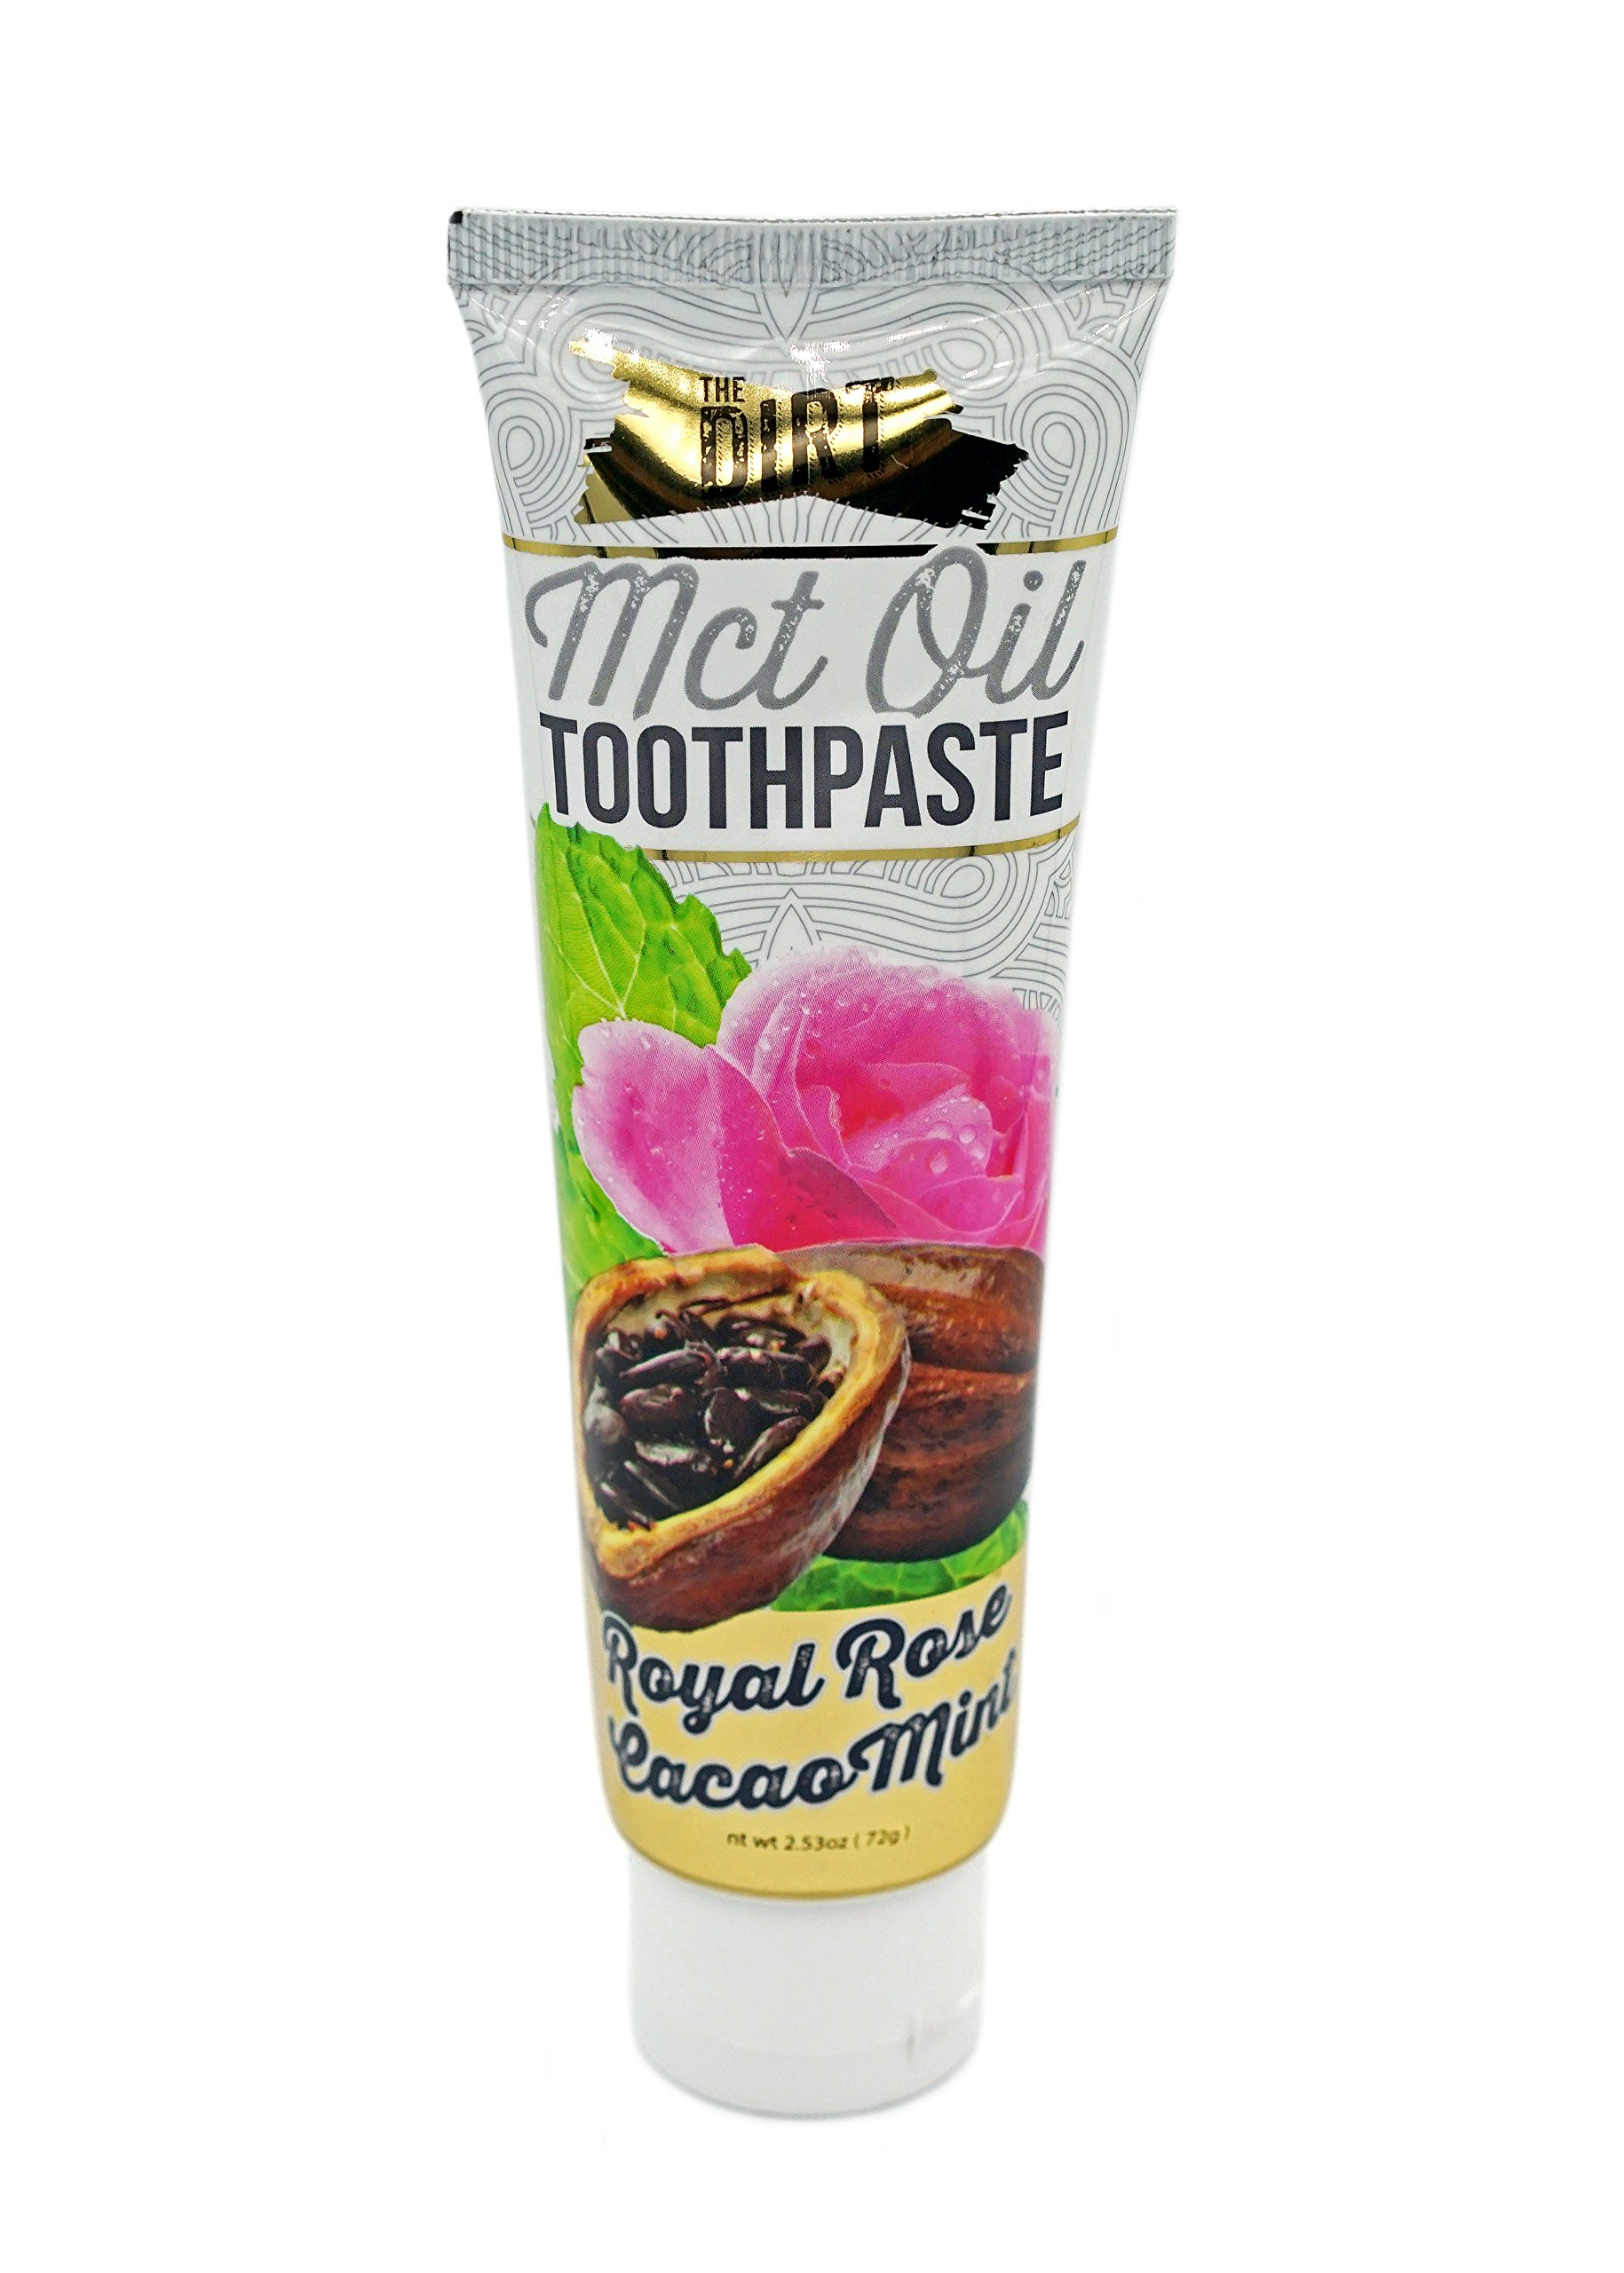 The Dirt All Natural Coconut Oil Toothpaste - Rose Cacao Mint - 10 week supply - 72g